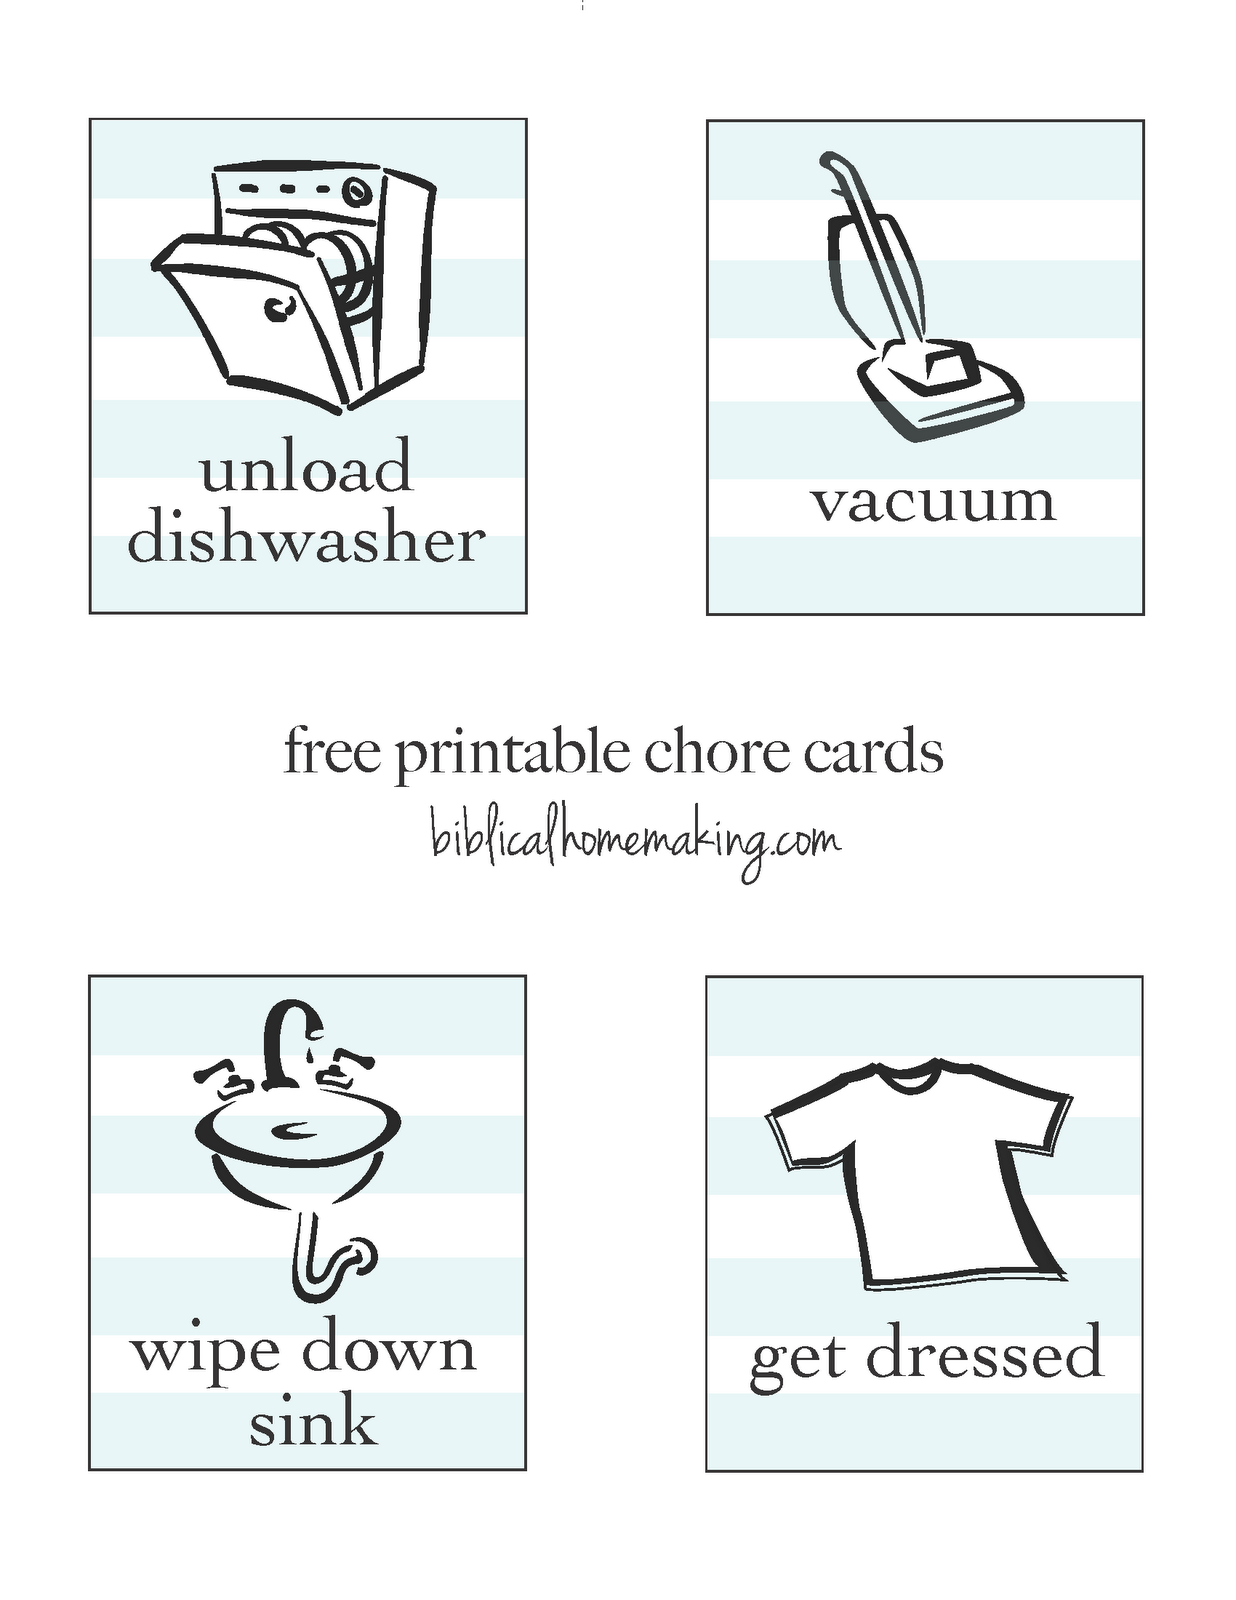 free printable chore cards & tutorial - Biblical Homemaking